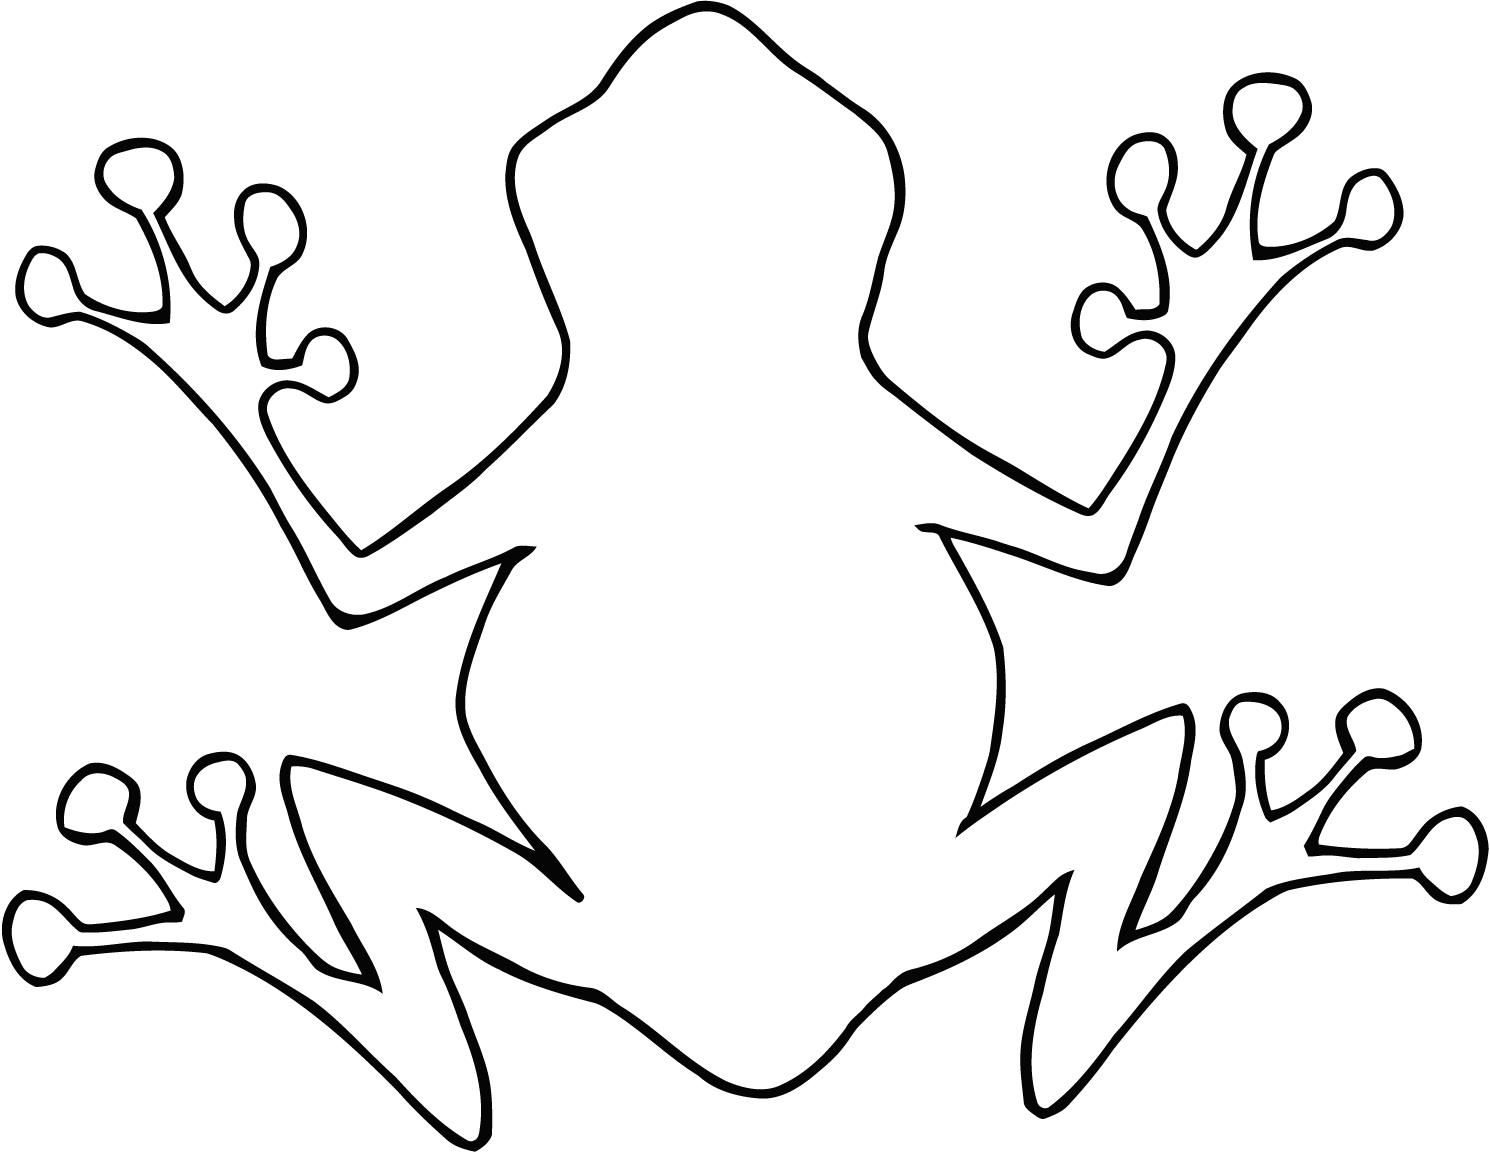 Tree frog outline panda. Frogs clipart shape